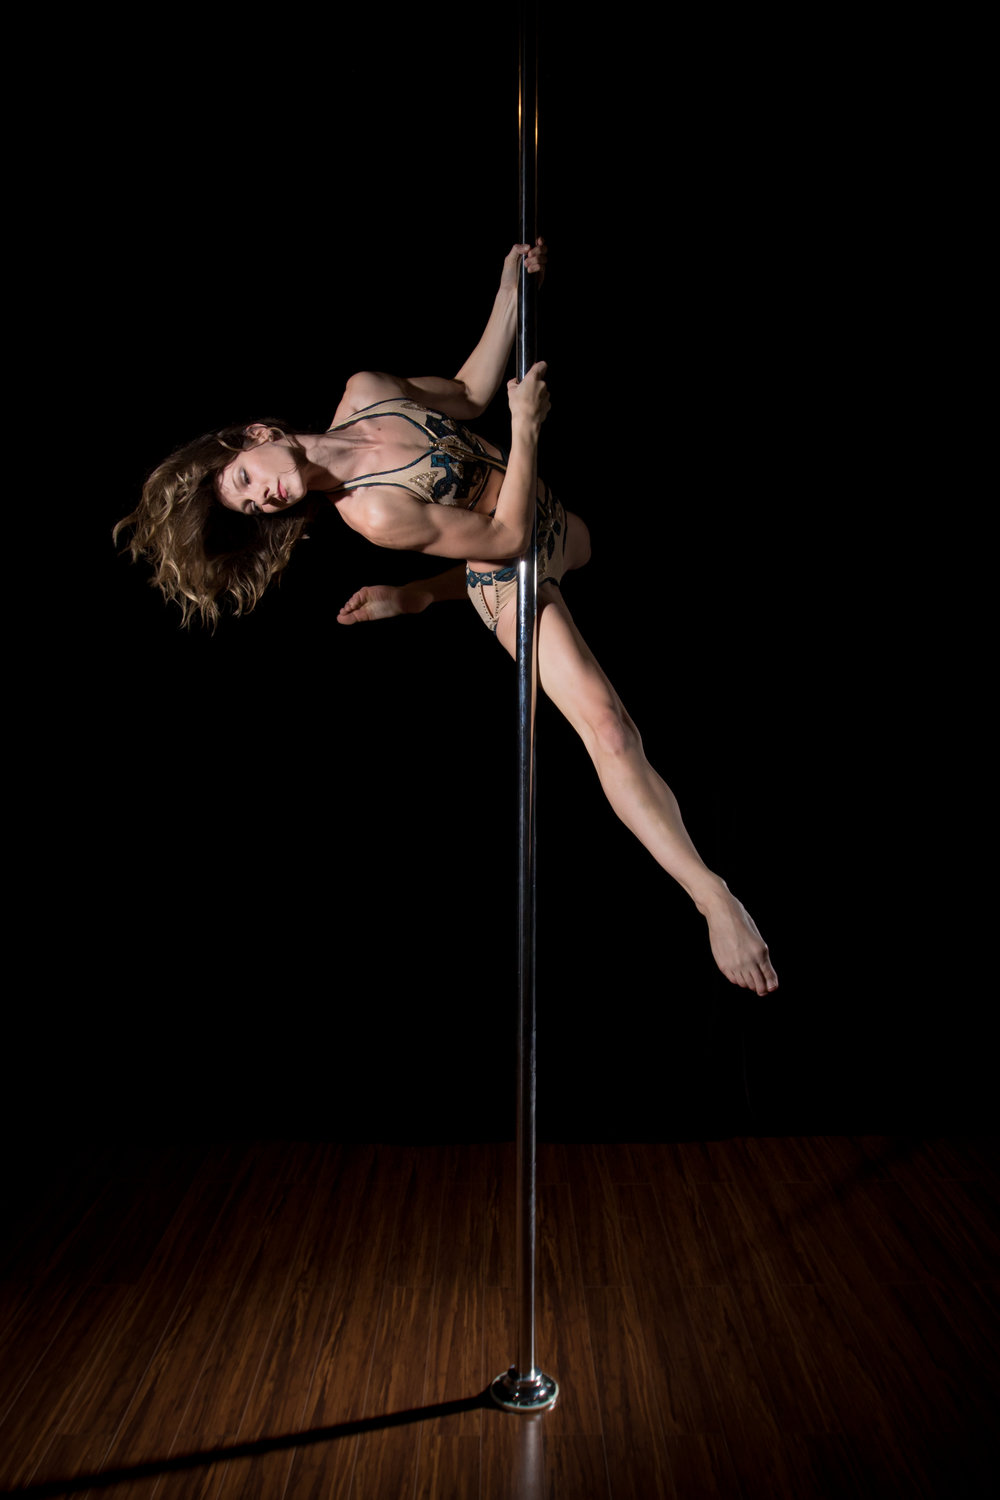 Tara Steed  IG:  @tututara   Tara is a former ballet dancer with over 2 decades of dancing and teaching experience. She discovered Pole in 2011 while looking for a new dance activity and has never looked back. She has competed and placed in several national competitions. Her style is graceful and dancey and she has a passion for clean, pretty lines. Tara loves teaching and thrives on coaching her students, and loves watching them meet and surpass their goals. Tara is a new mom to her baby boy Felix, and enjoys spending her free time with her husband and corgi puppy watching bad movies and eating good food.